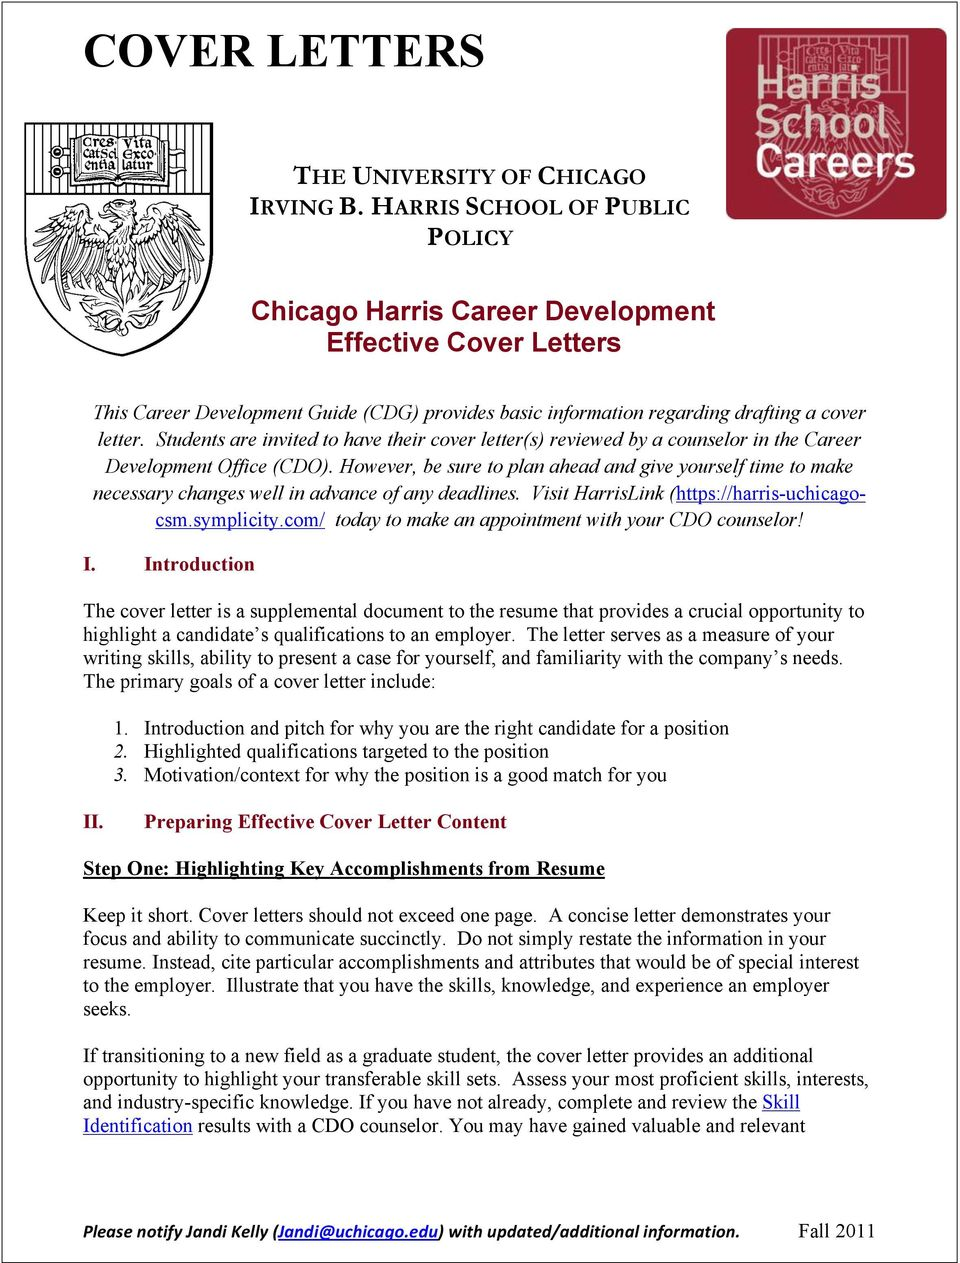 Chicago Harris Career Development Effective Cover Letters - PDF